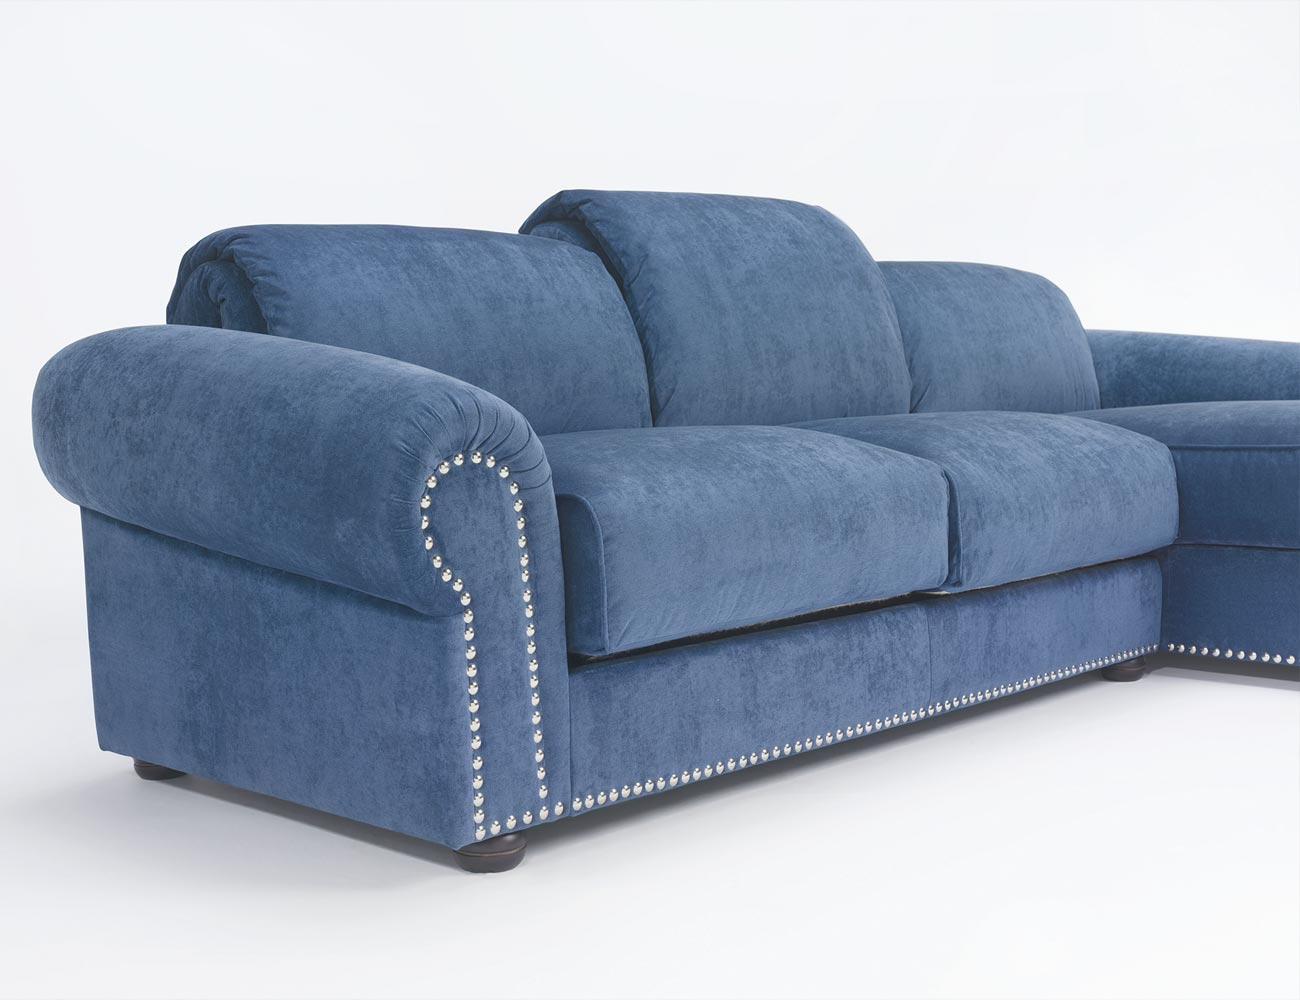 Sofa chaiselongue gran lujo decorativo azul 143